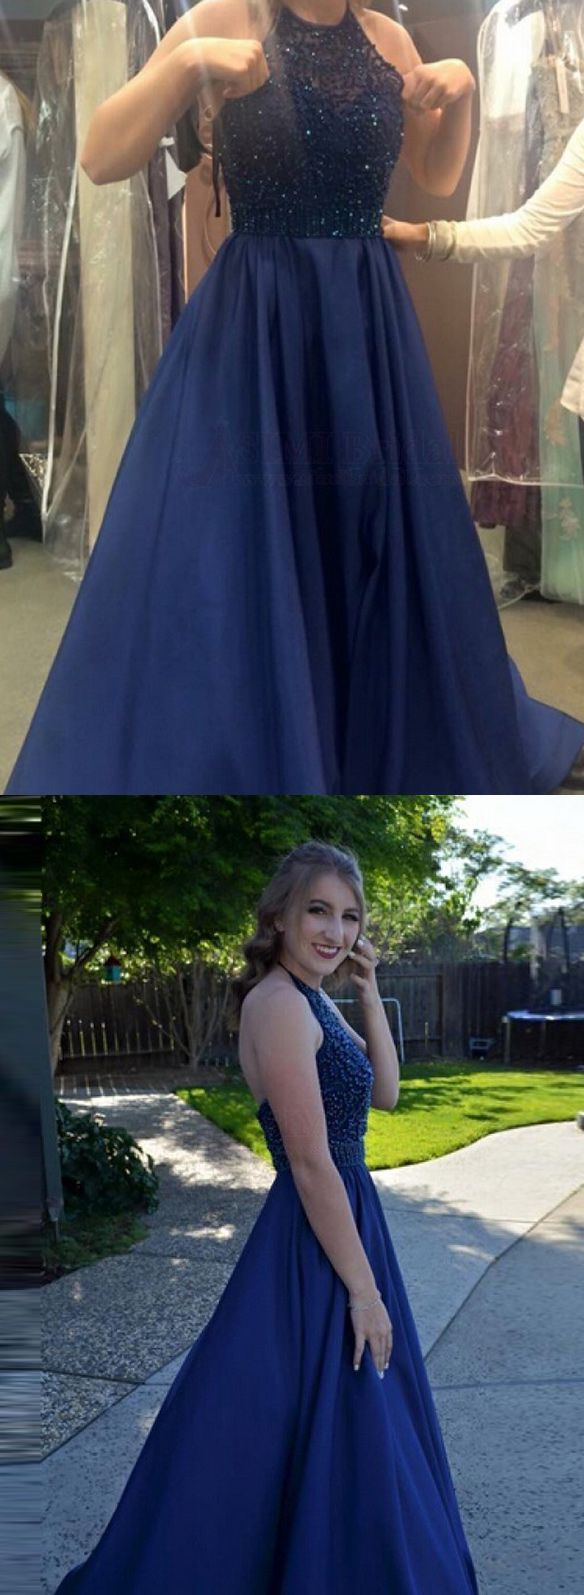 navy blue prom dresses, backless prom dresses, halter prom gown, special prom dresses for women